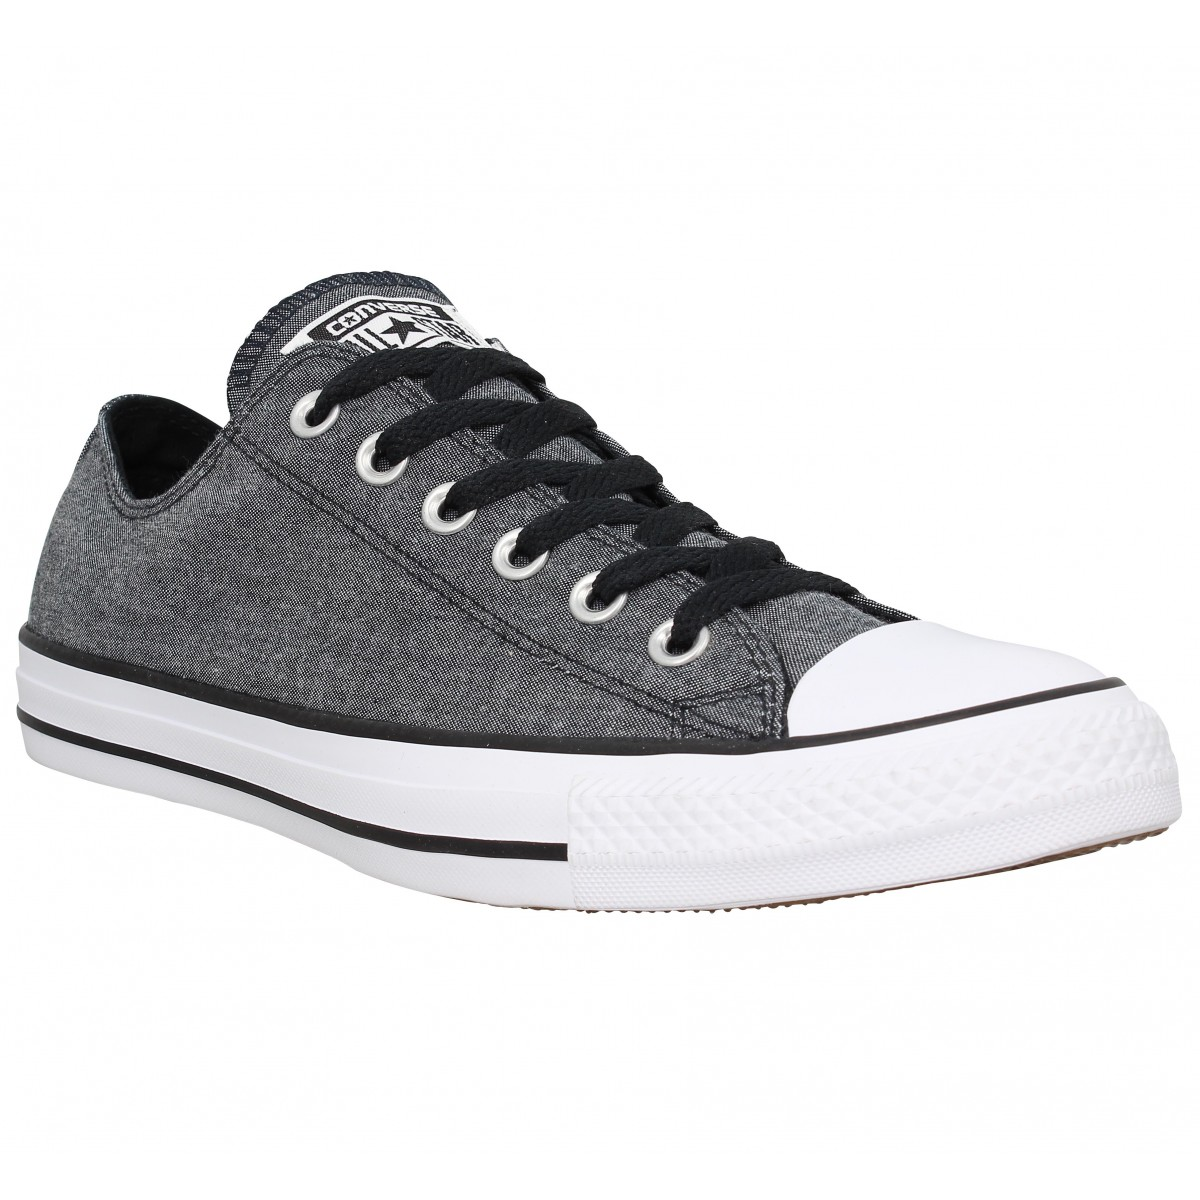 Baskets CONVERSE Chuck Taylor All Star toile Homme Black Light